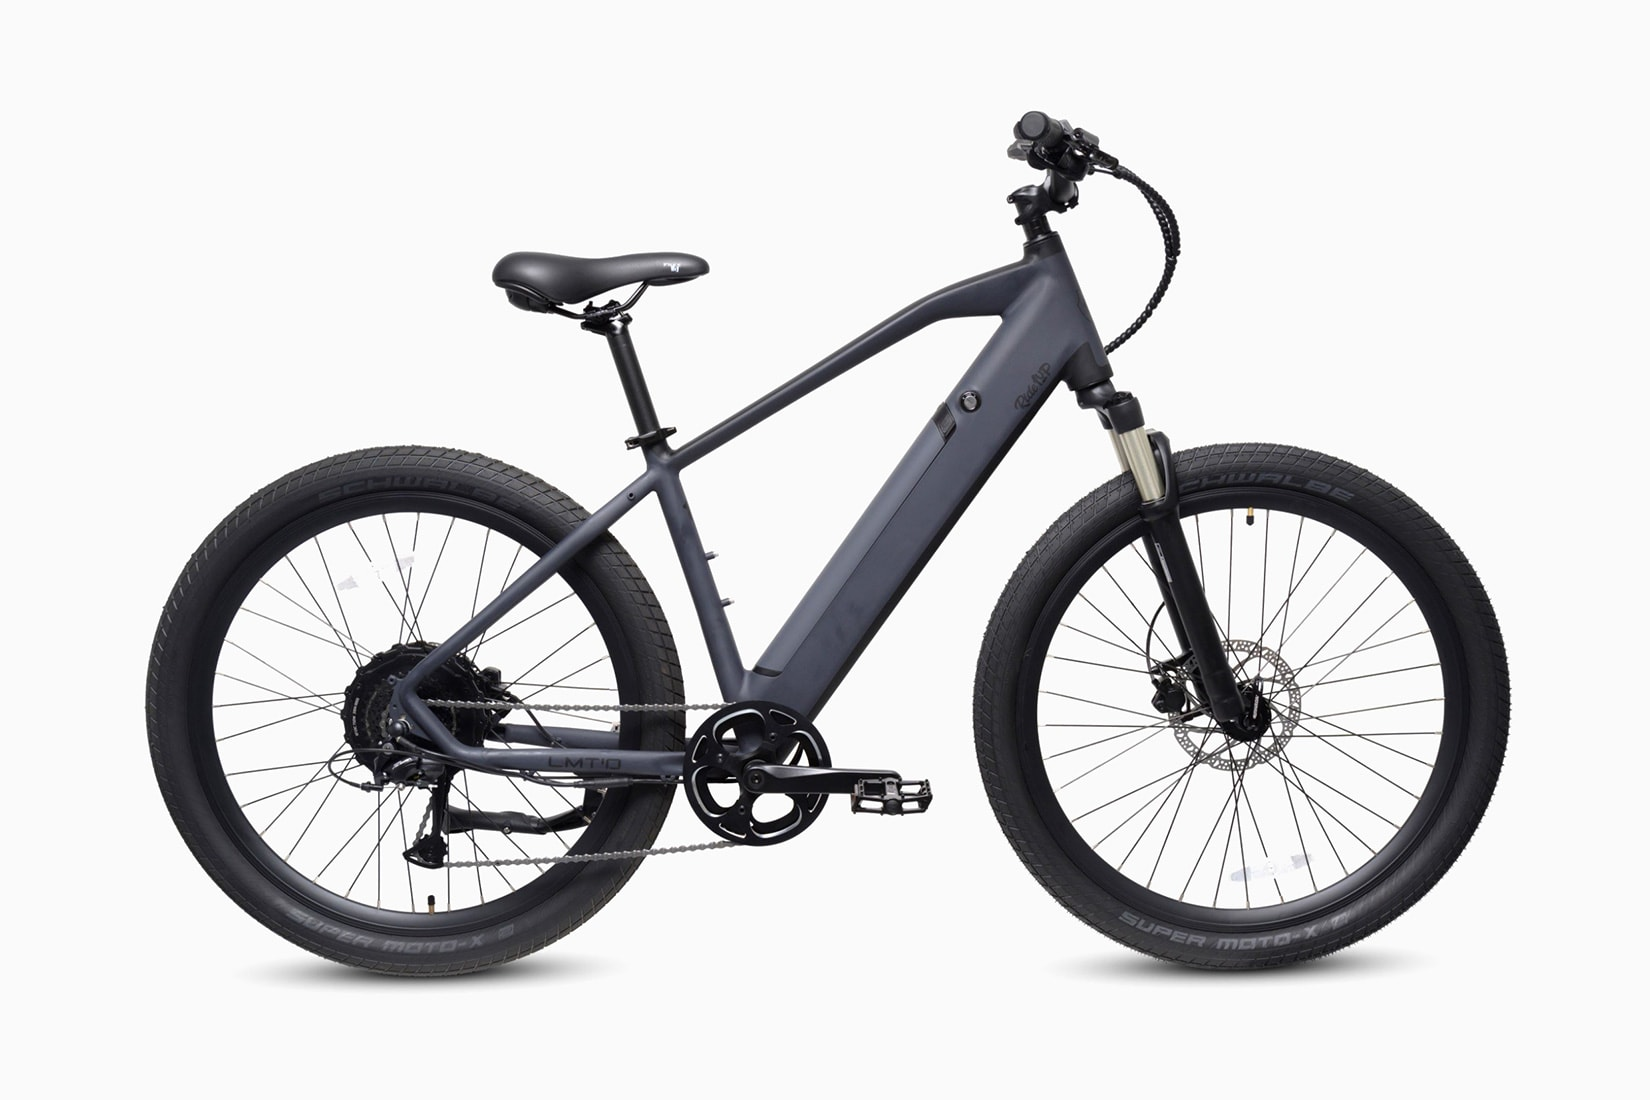 best electric bikes premium ride1up review - Luxe Digital